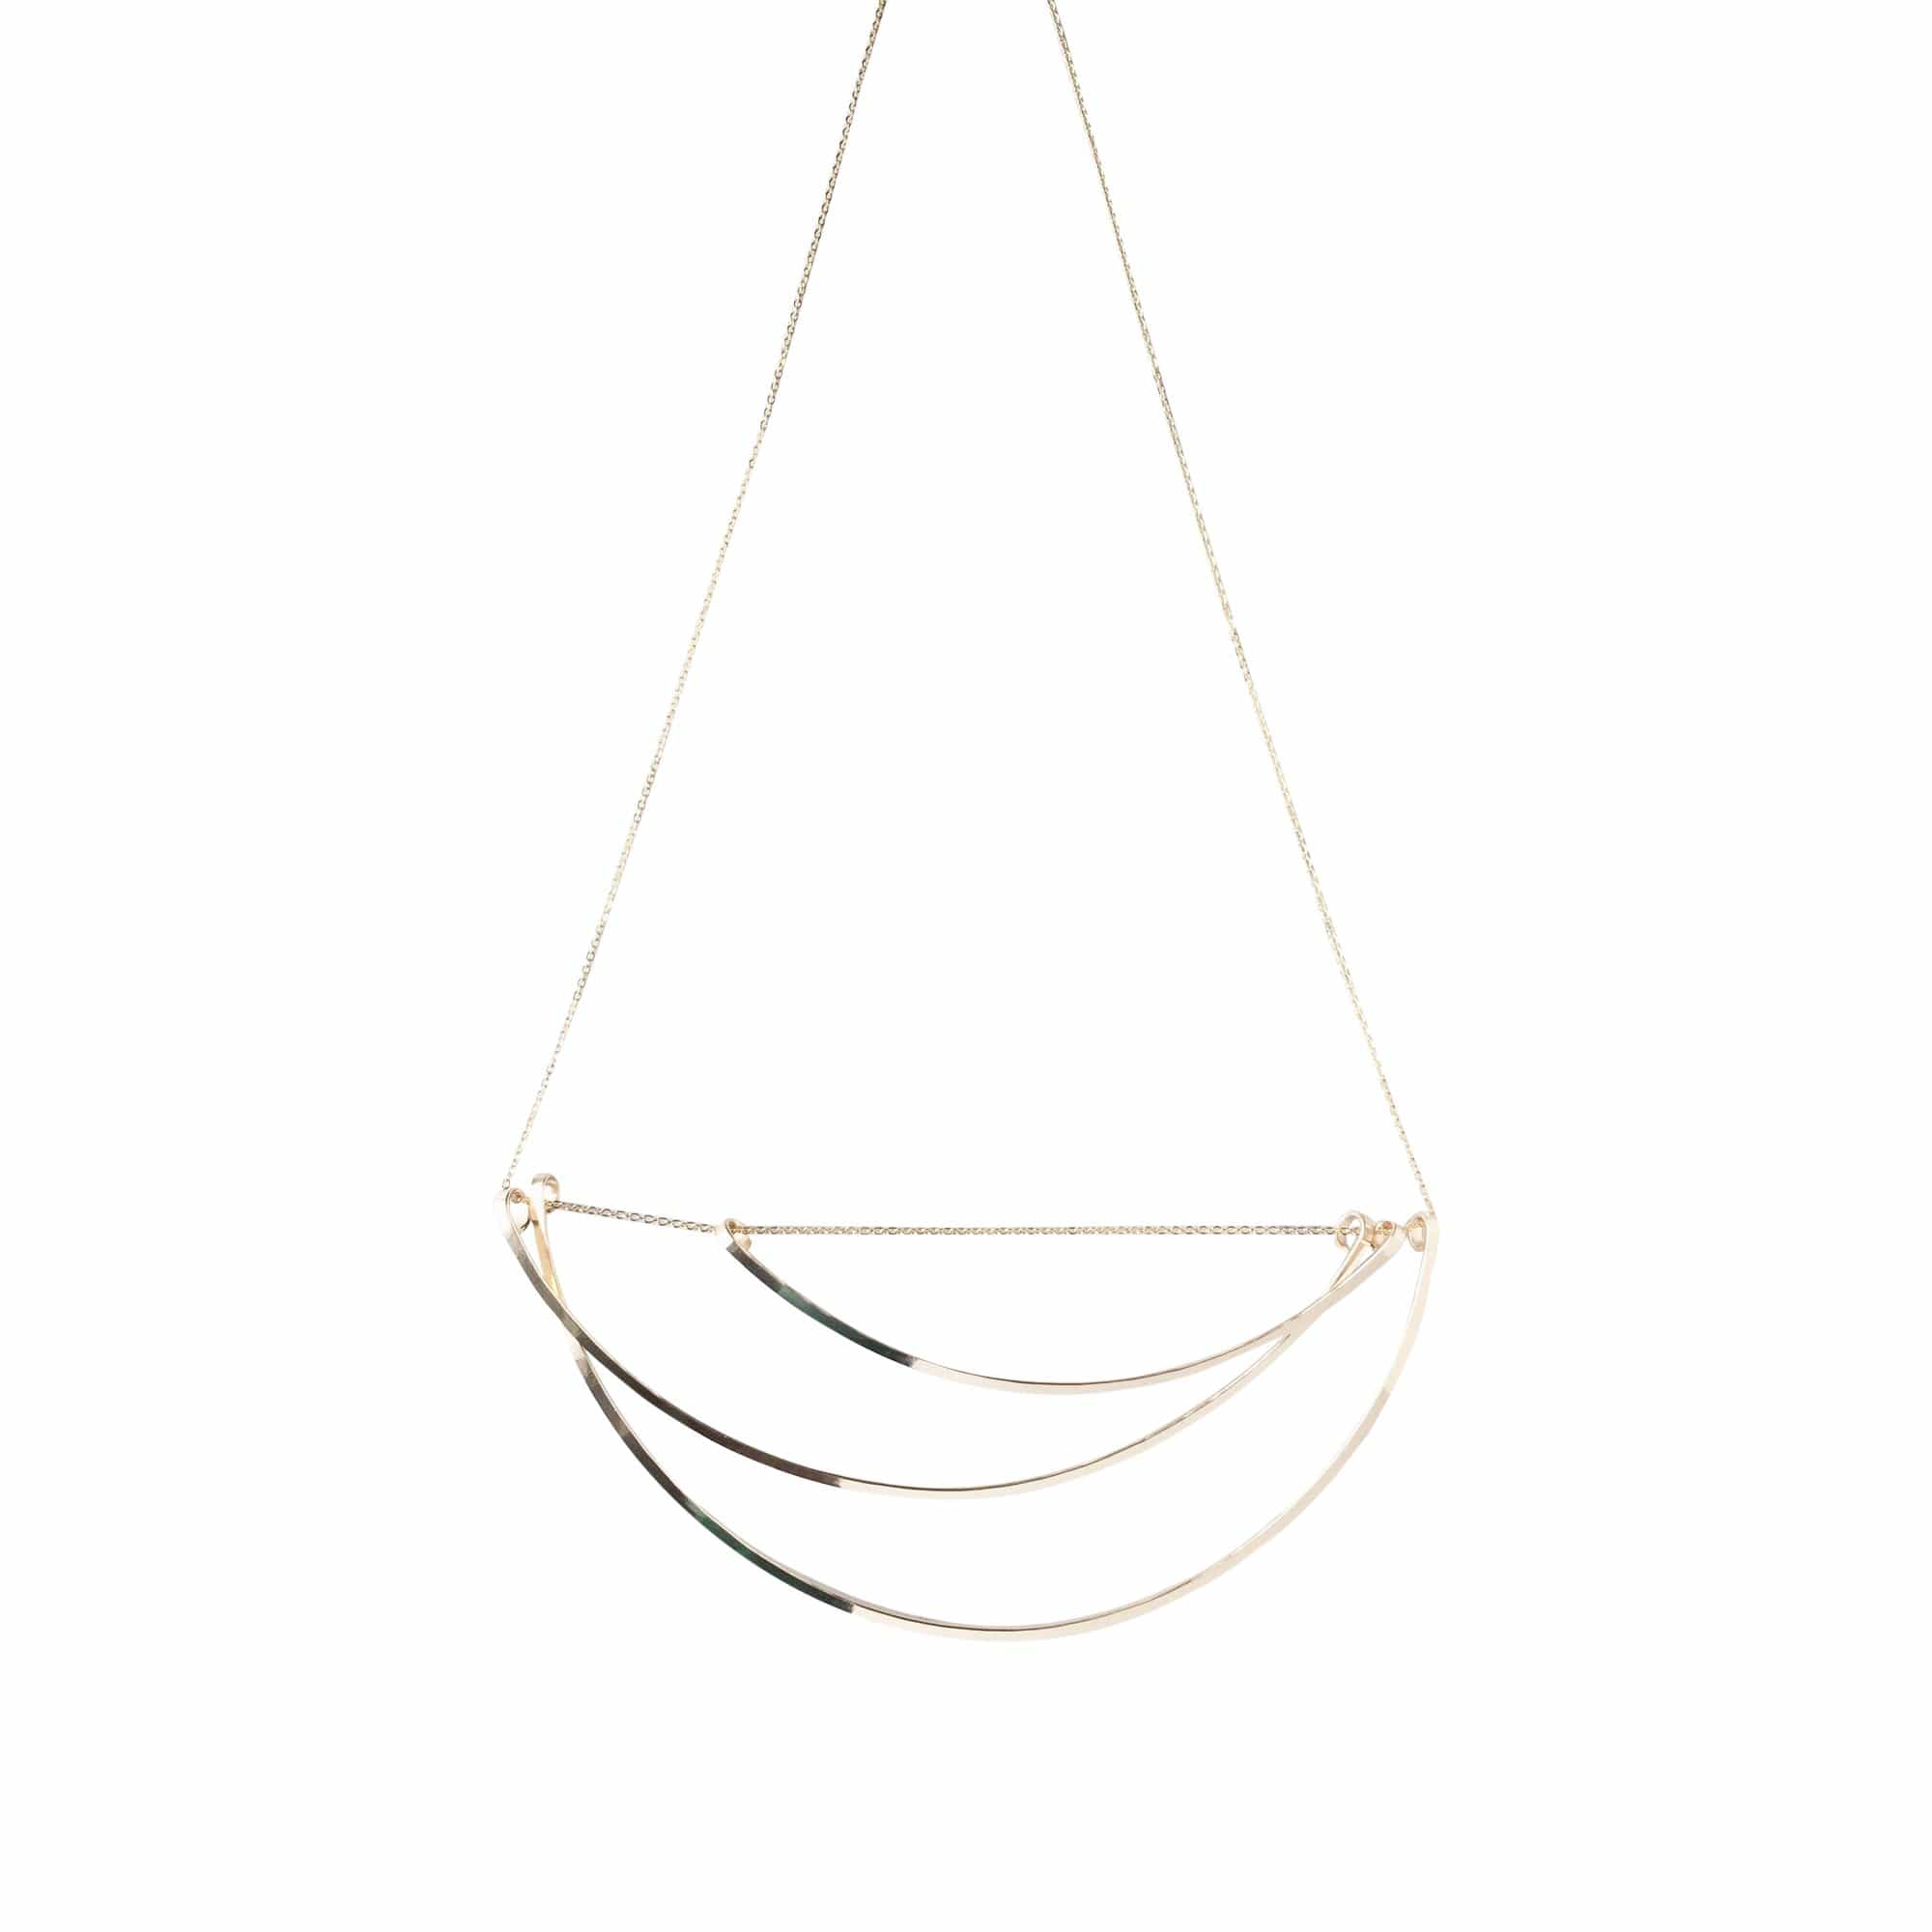 L.Greenwalt Jewelry Necklaces Tidal Asymmetrical Necklace